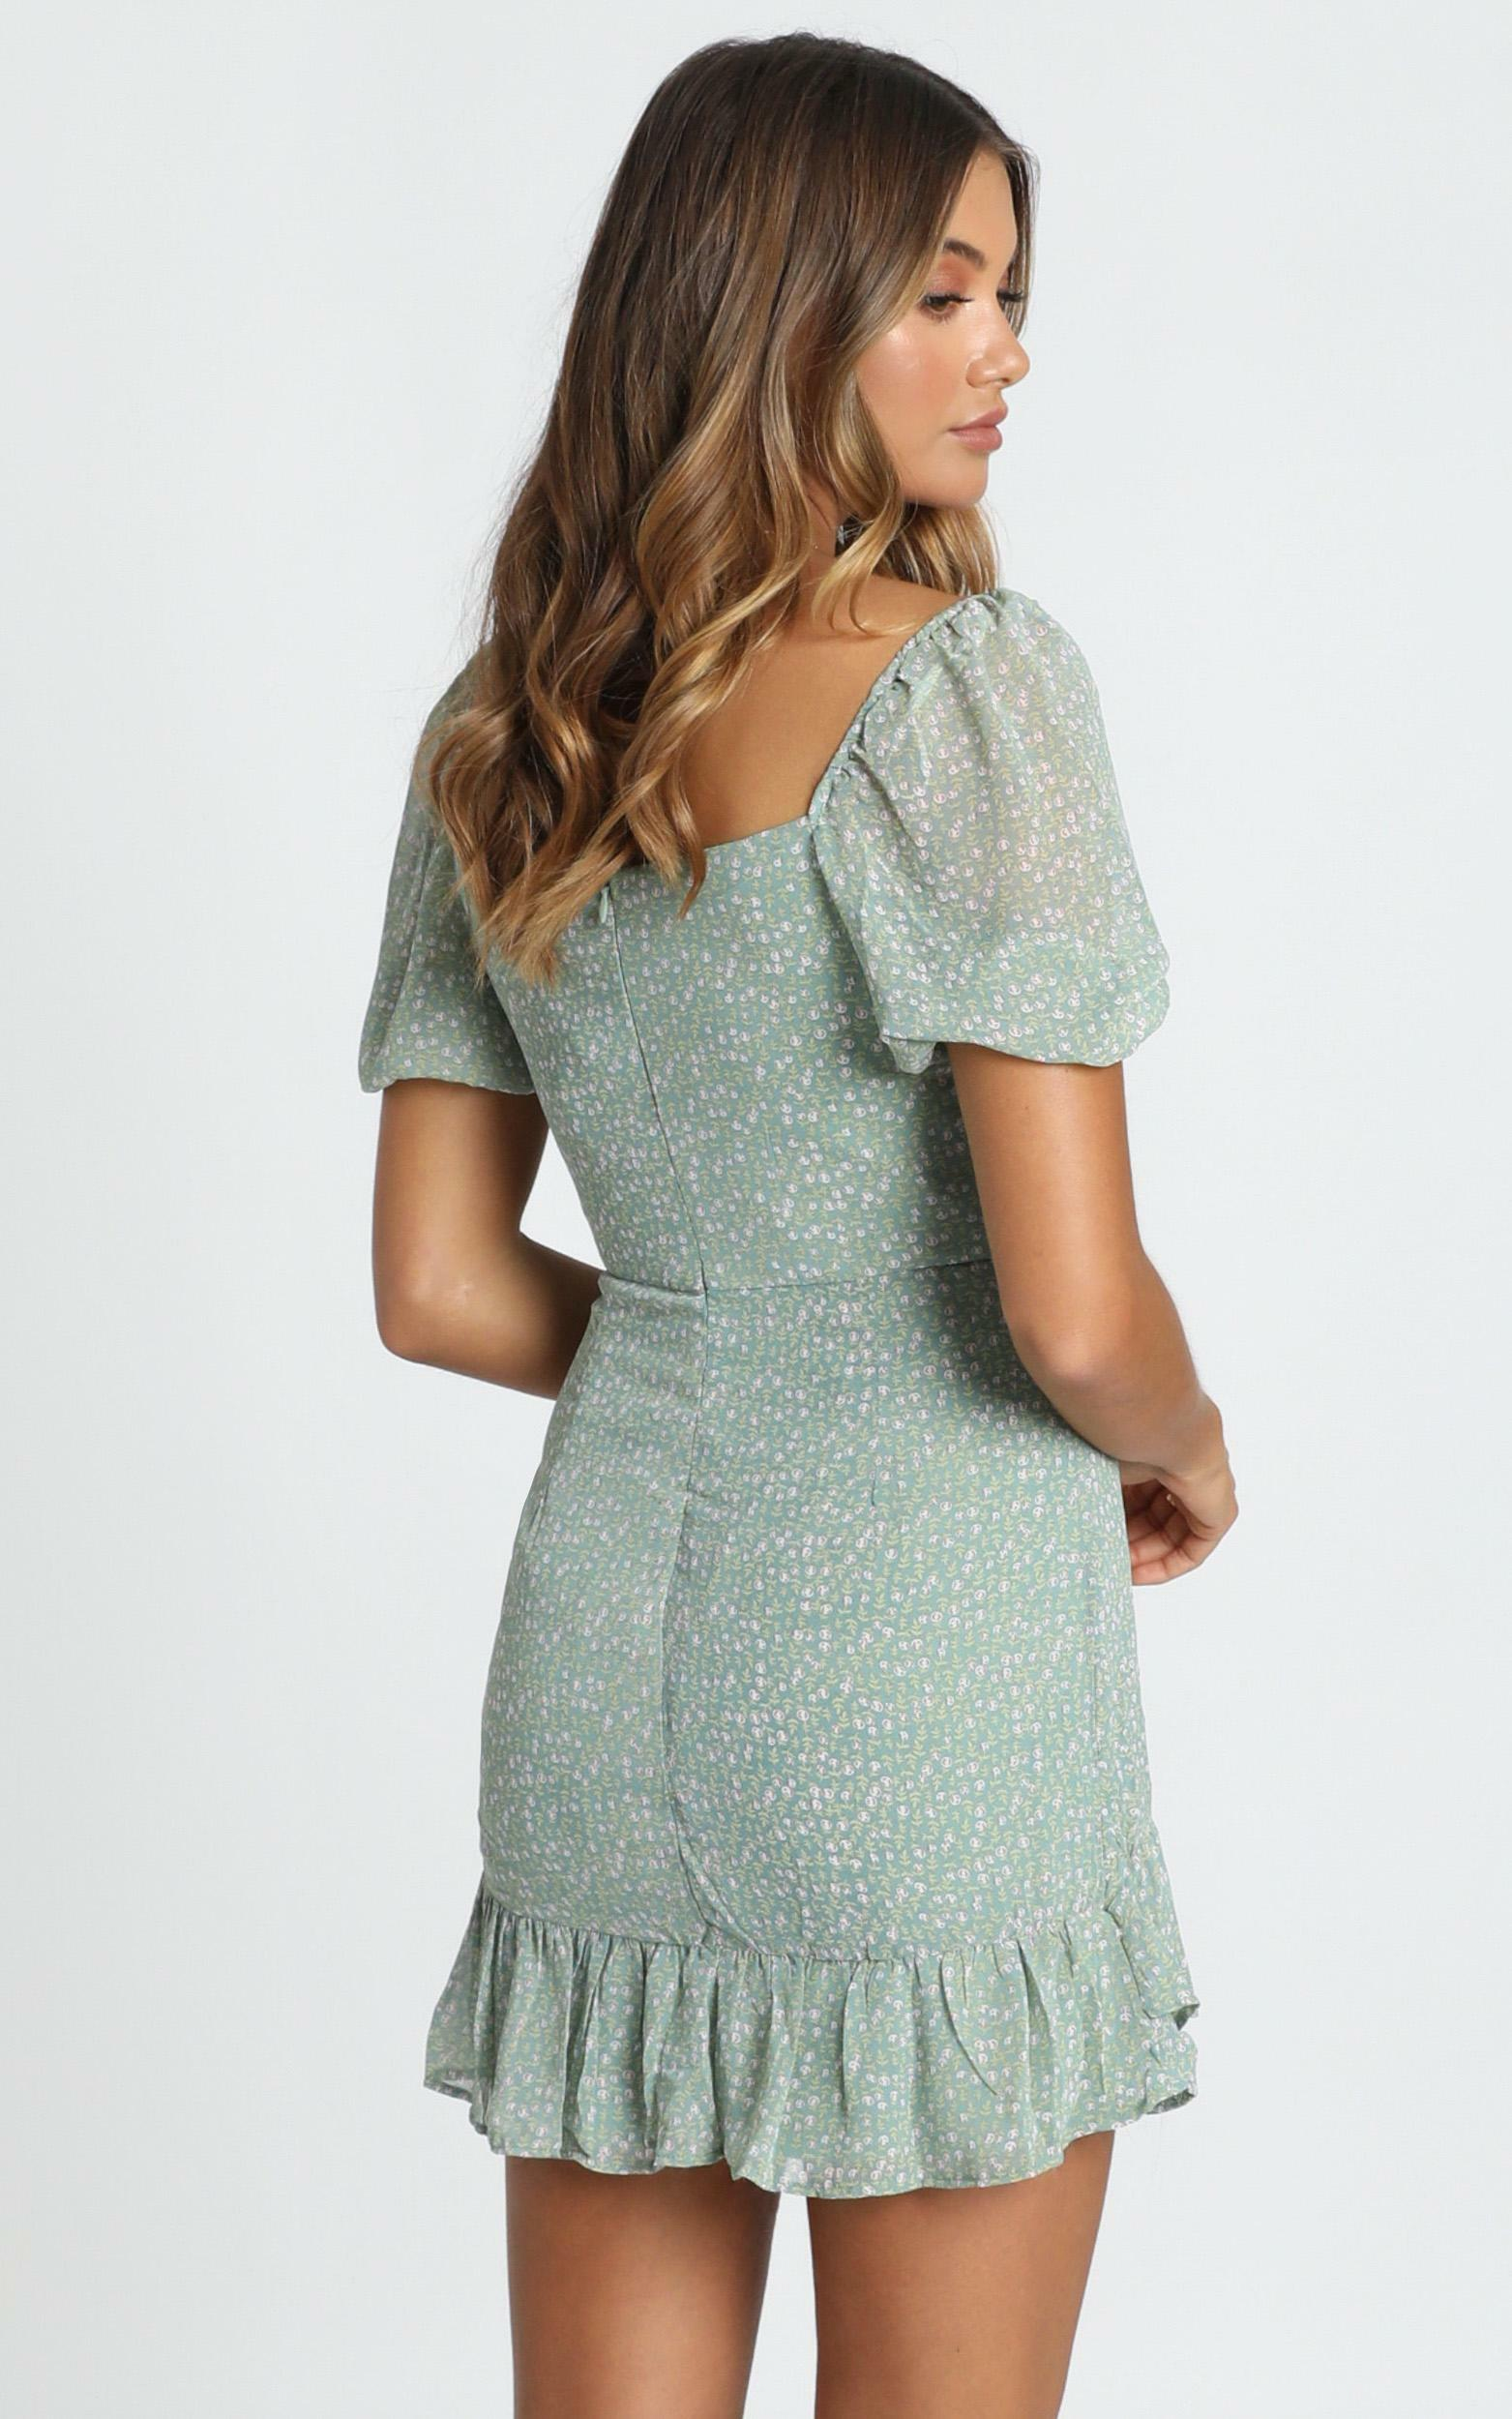 Shelby Mini Dress in mint floral - 12 (L), Green, hi-res image number null